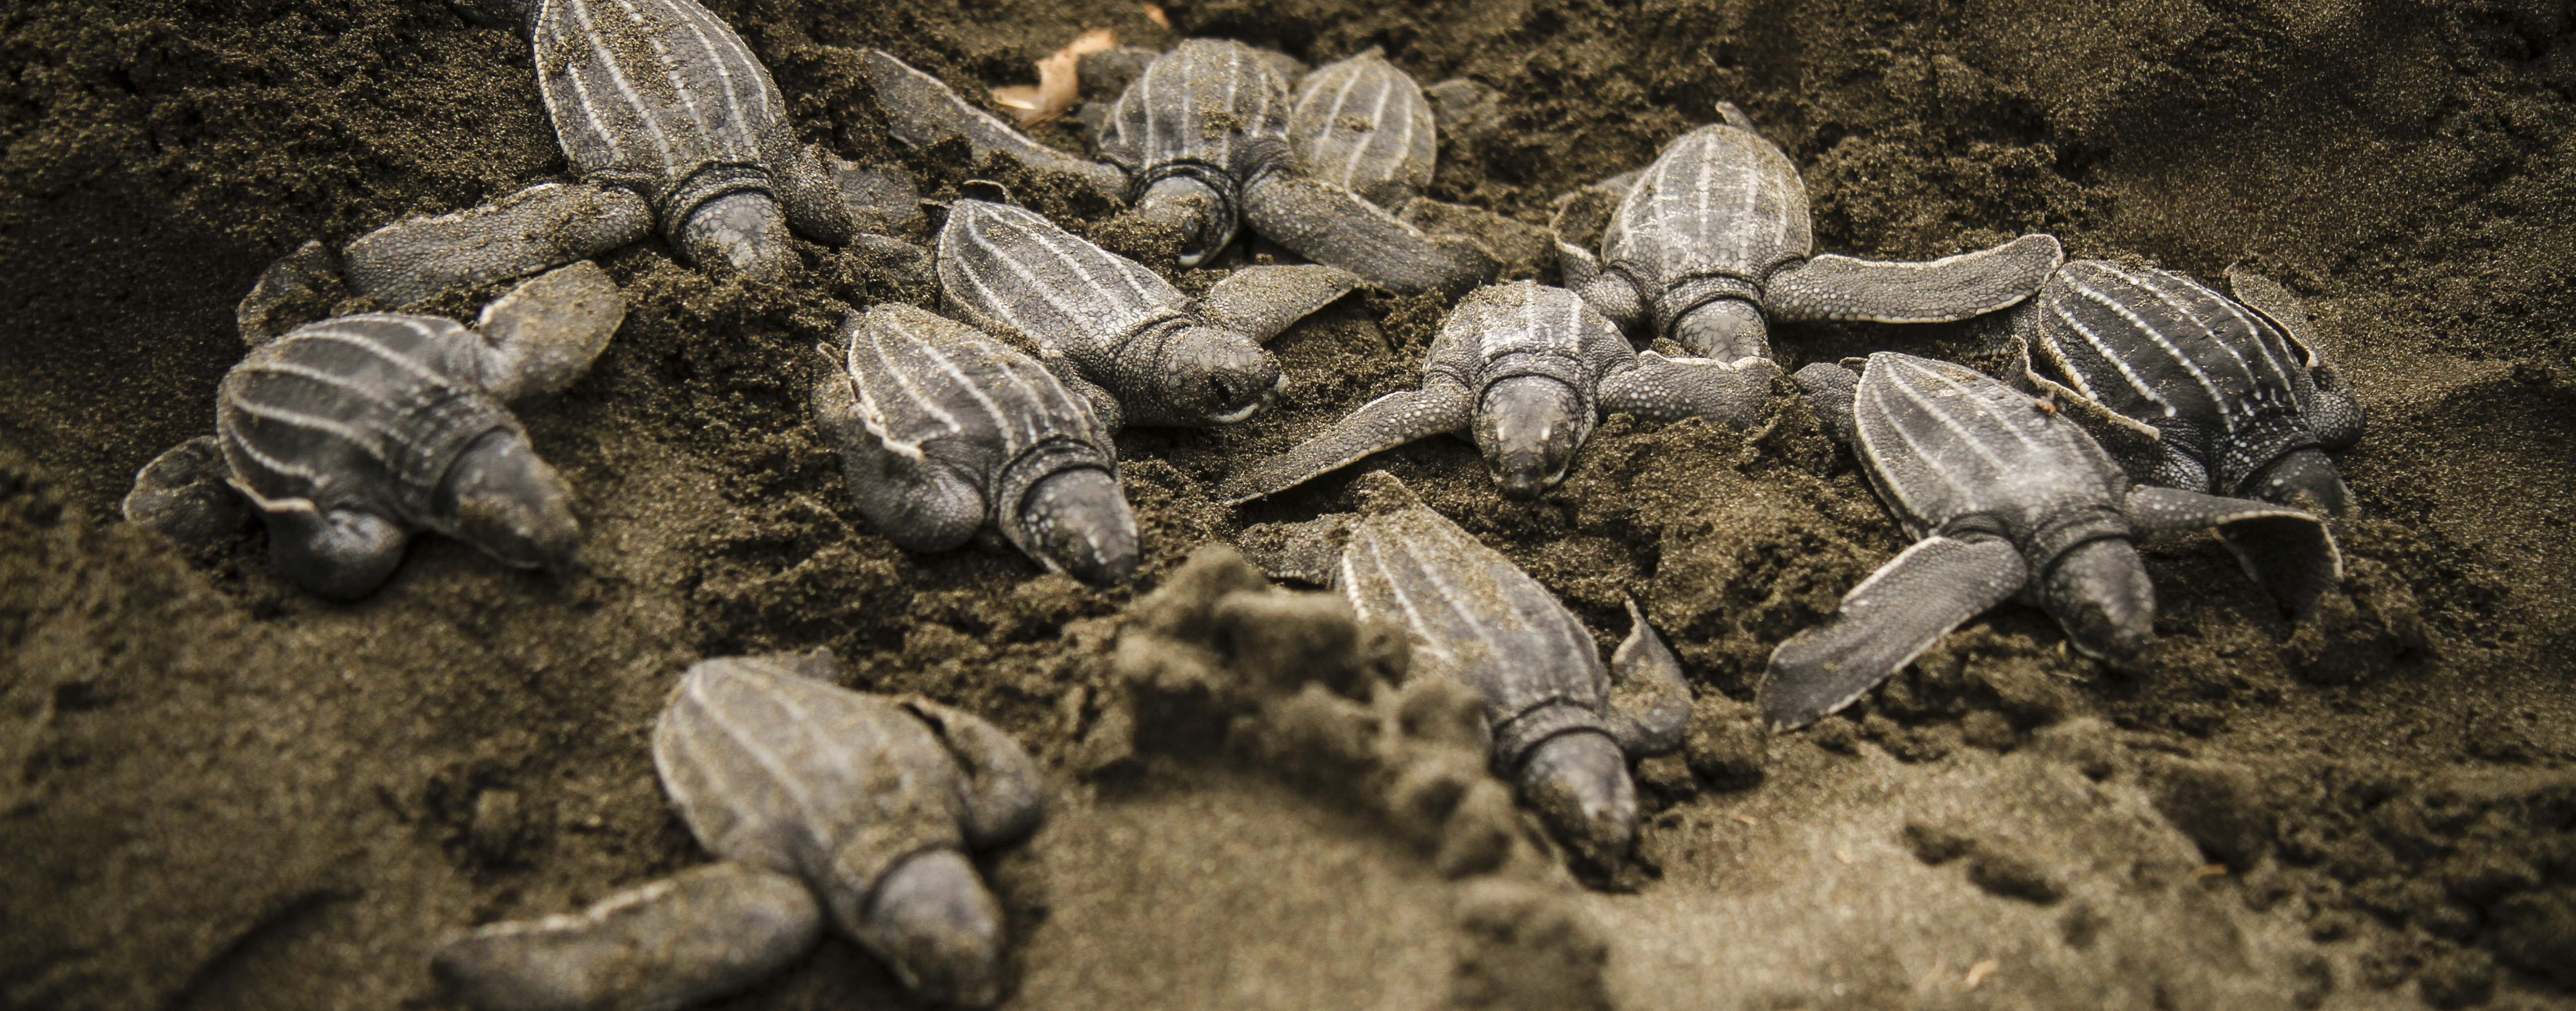 Image of baby turtles hatching, Costa Rica